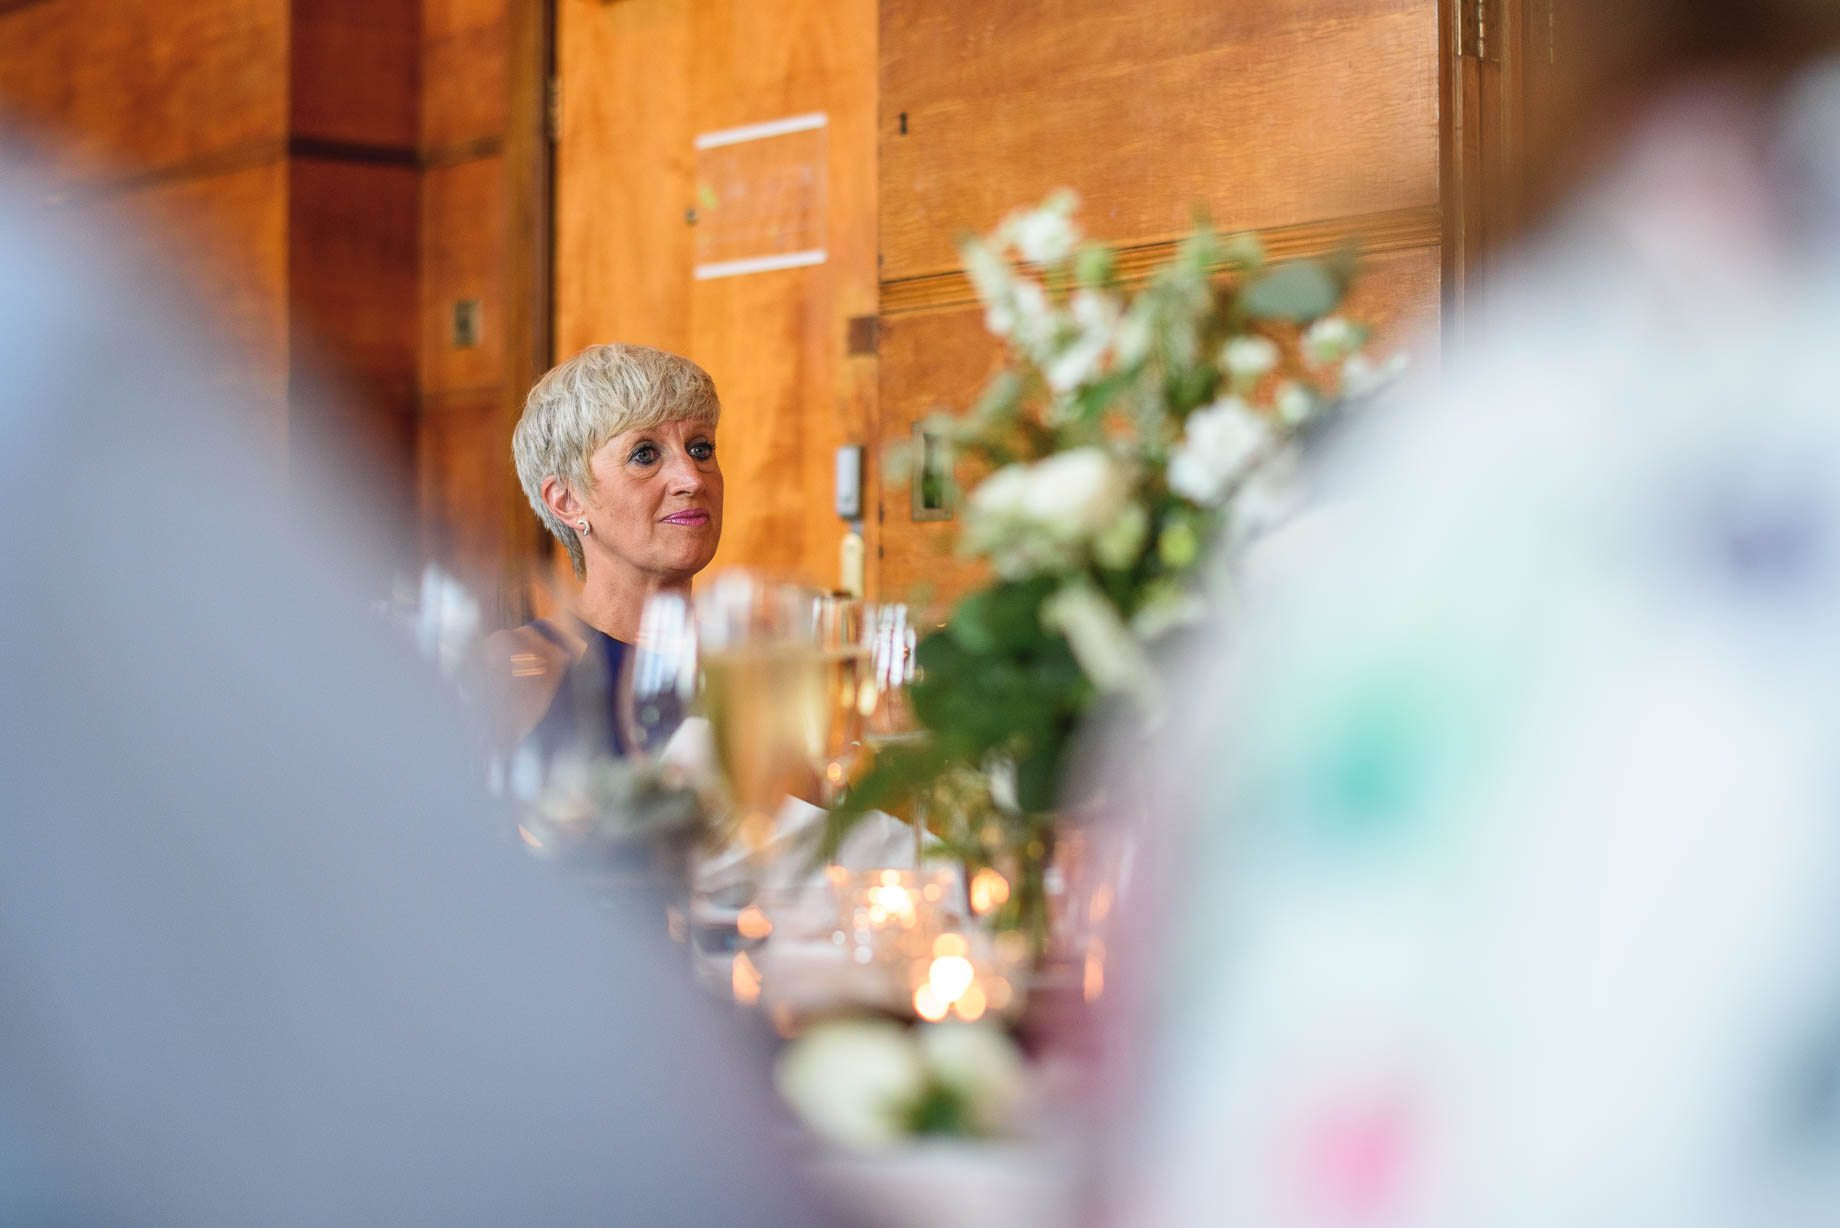 London Wedding Photography - Guy Collier Photography - LJ + Russell (104 of 155)